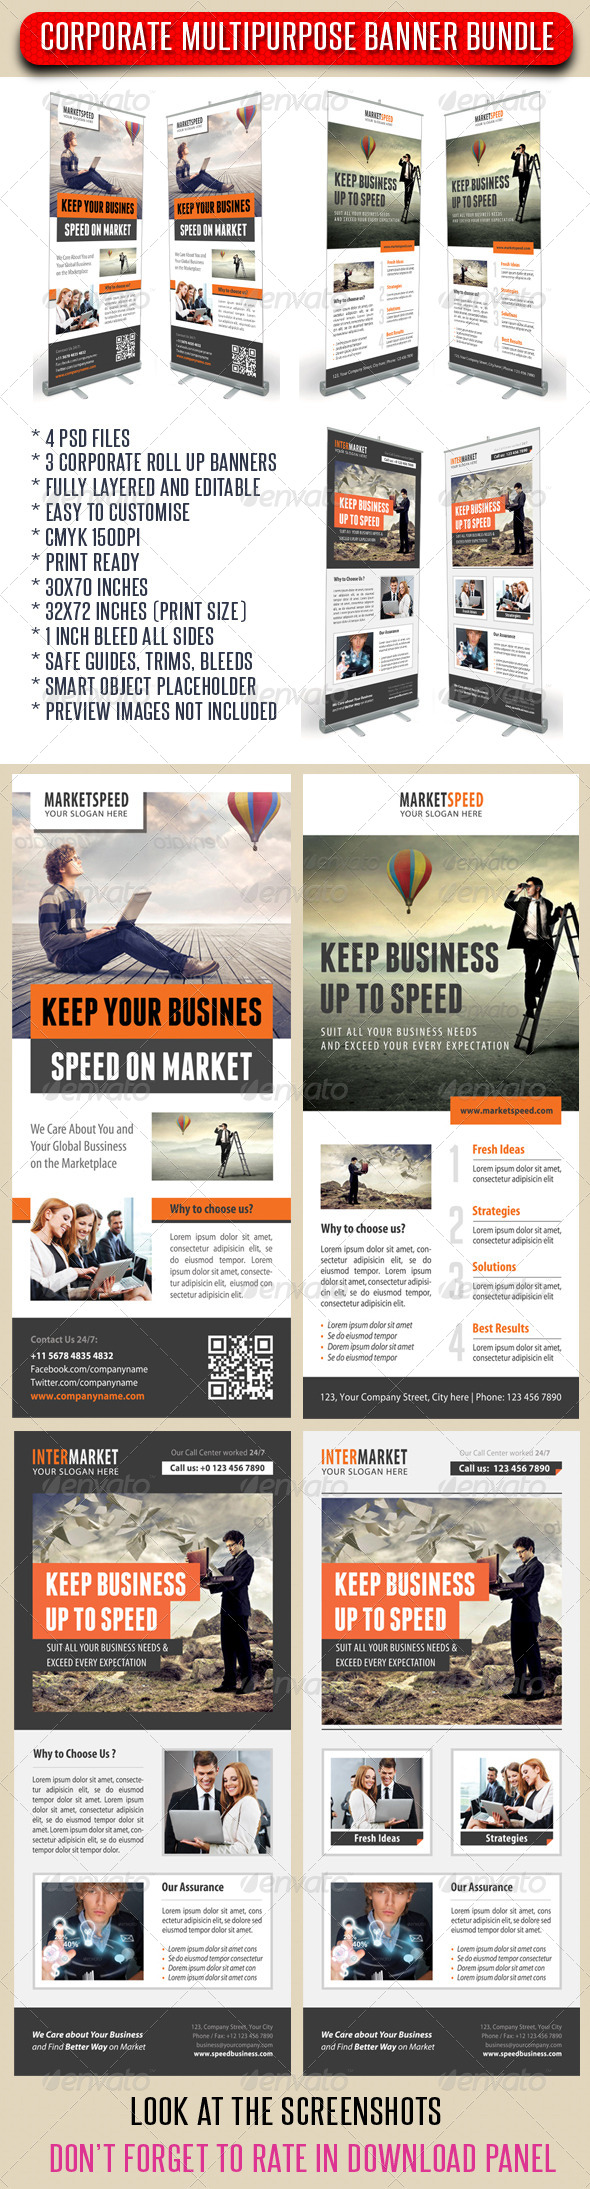 GraphicRiver 3 in 1 Corporate Rollup Banner Bundle 12 8700213